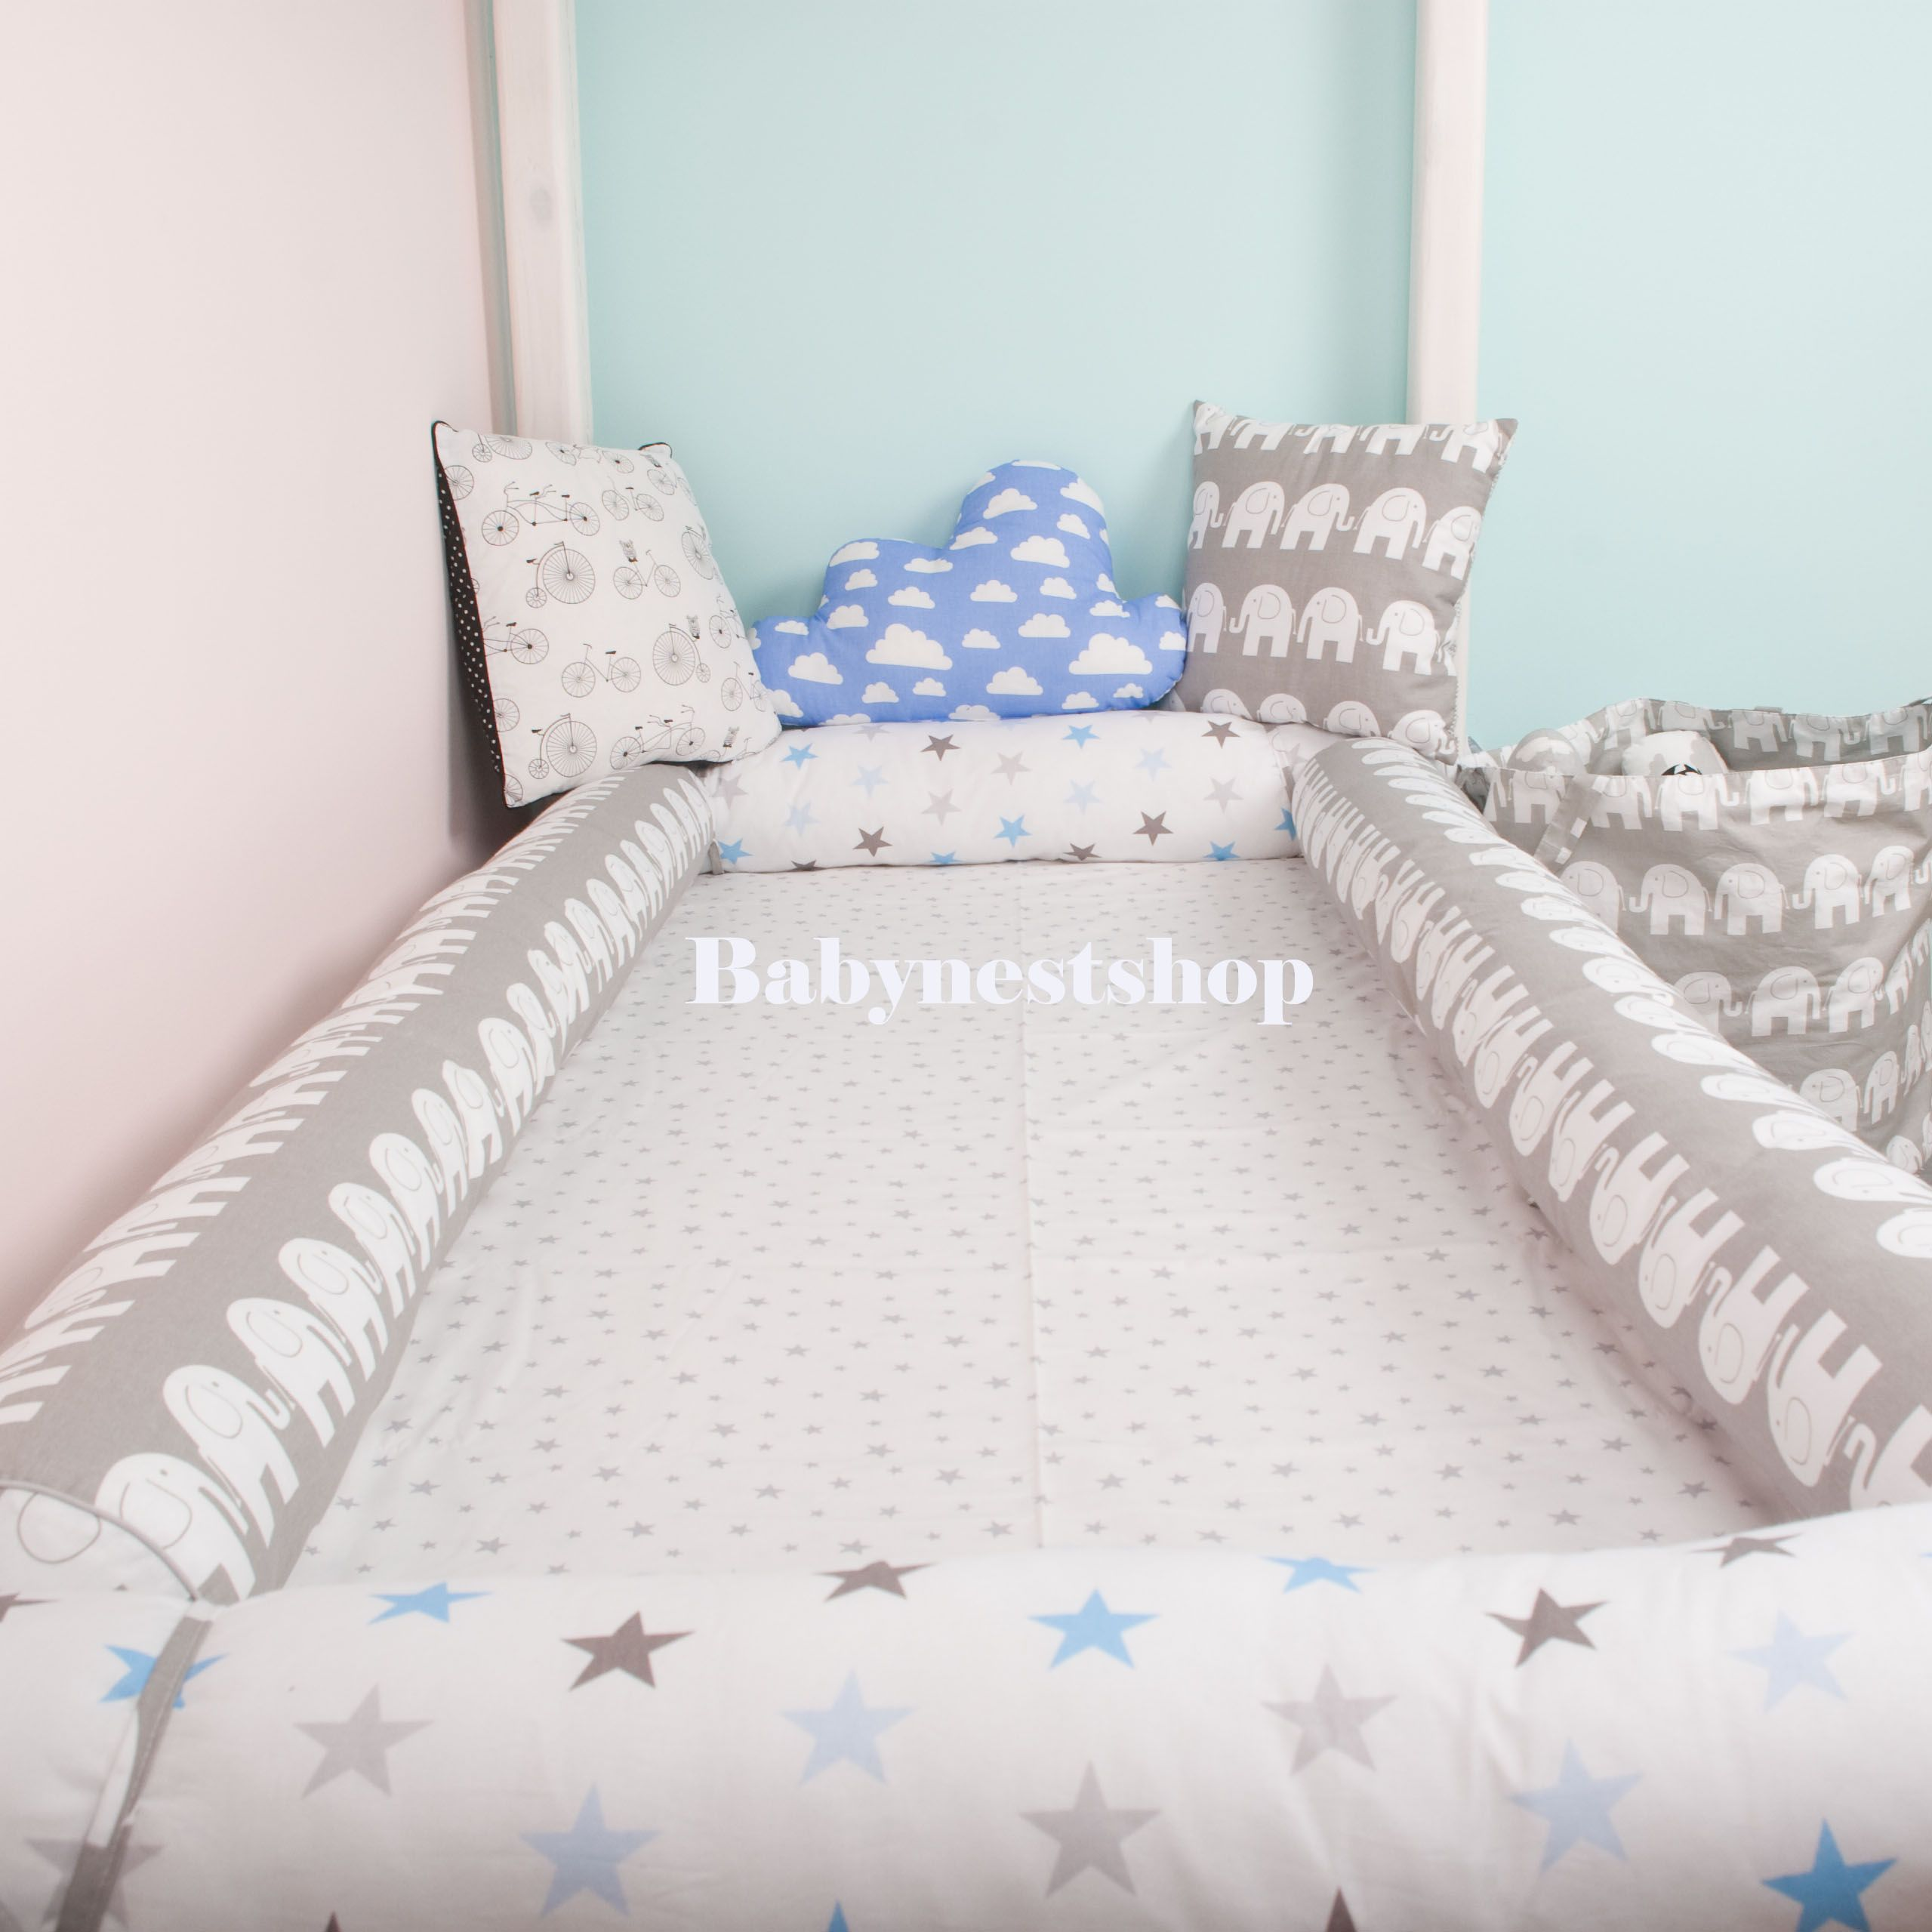 where to buy baby bed bumper baby cot cushions toddler bed bolster